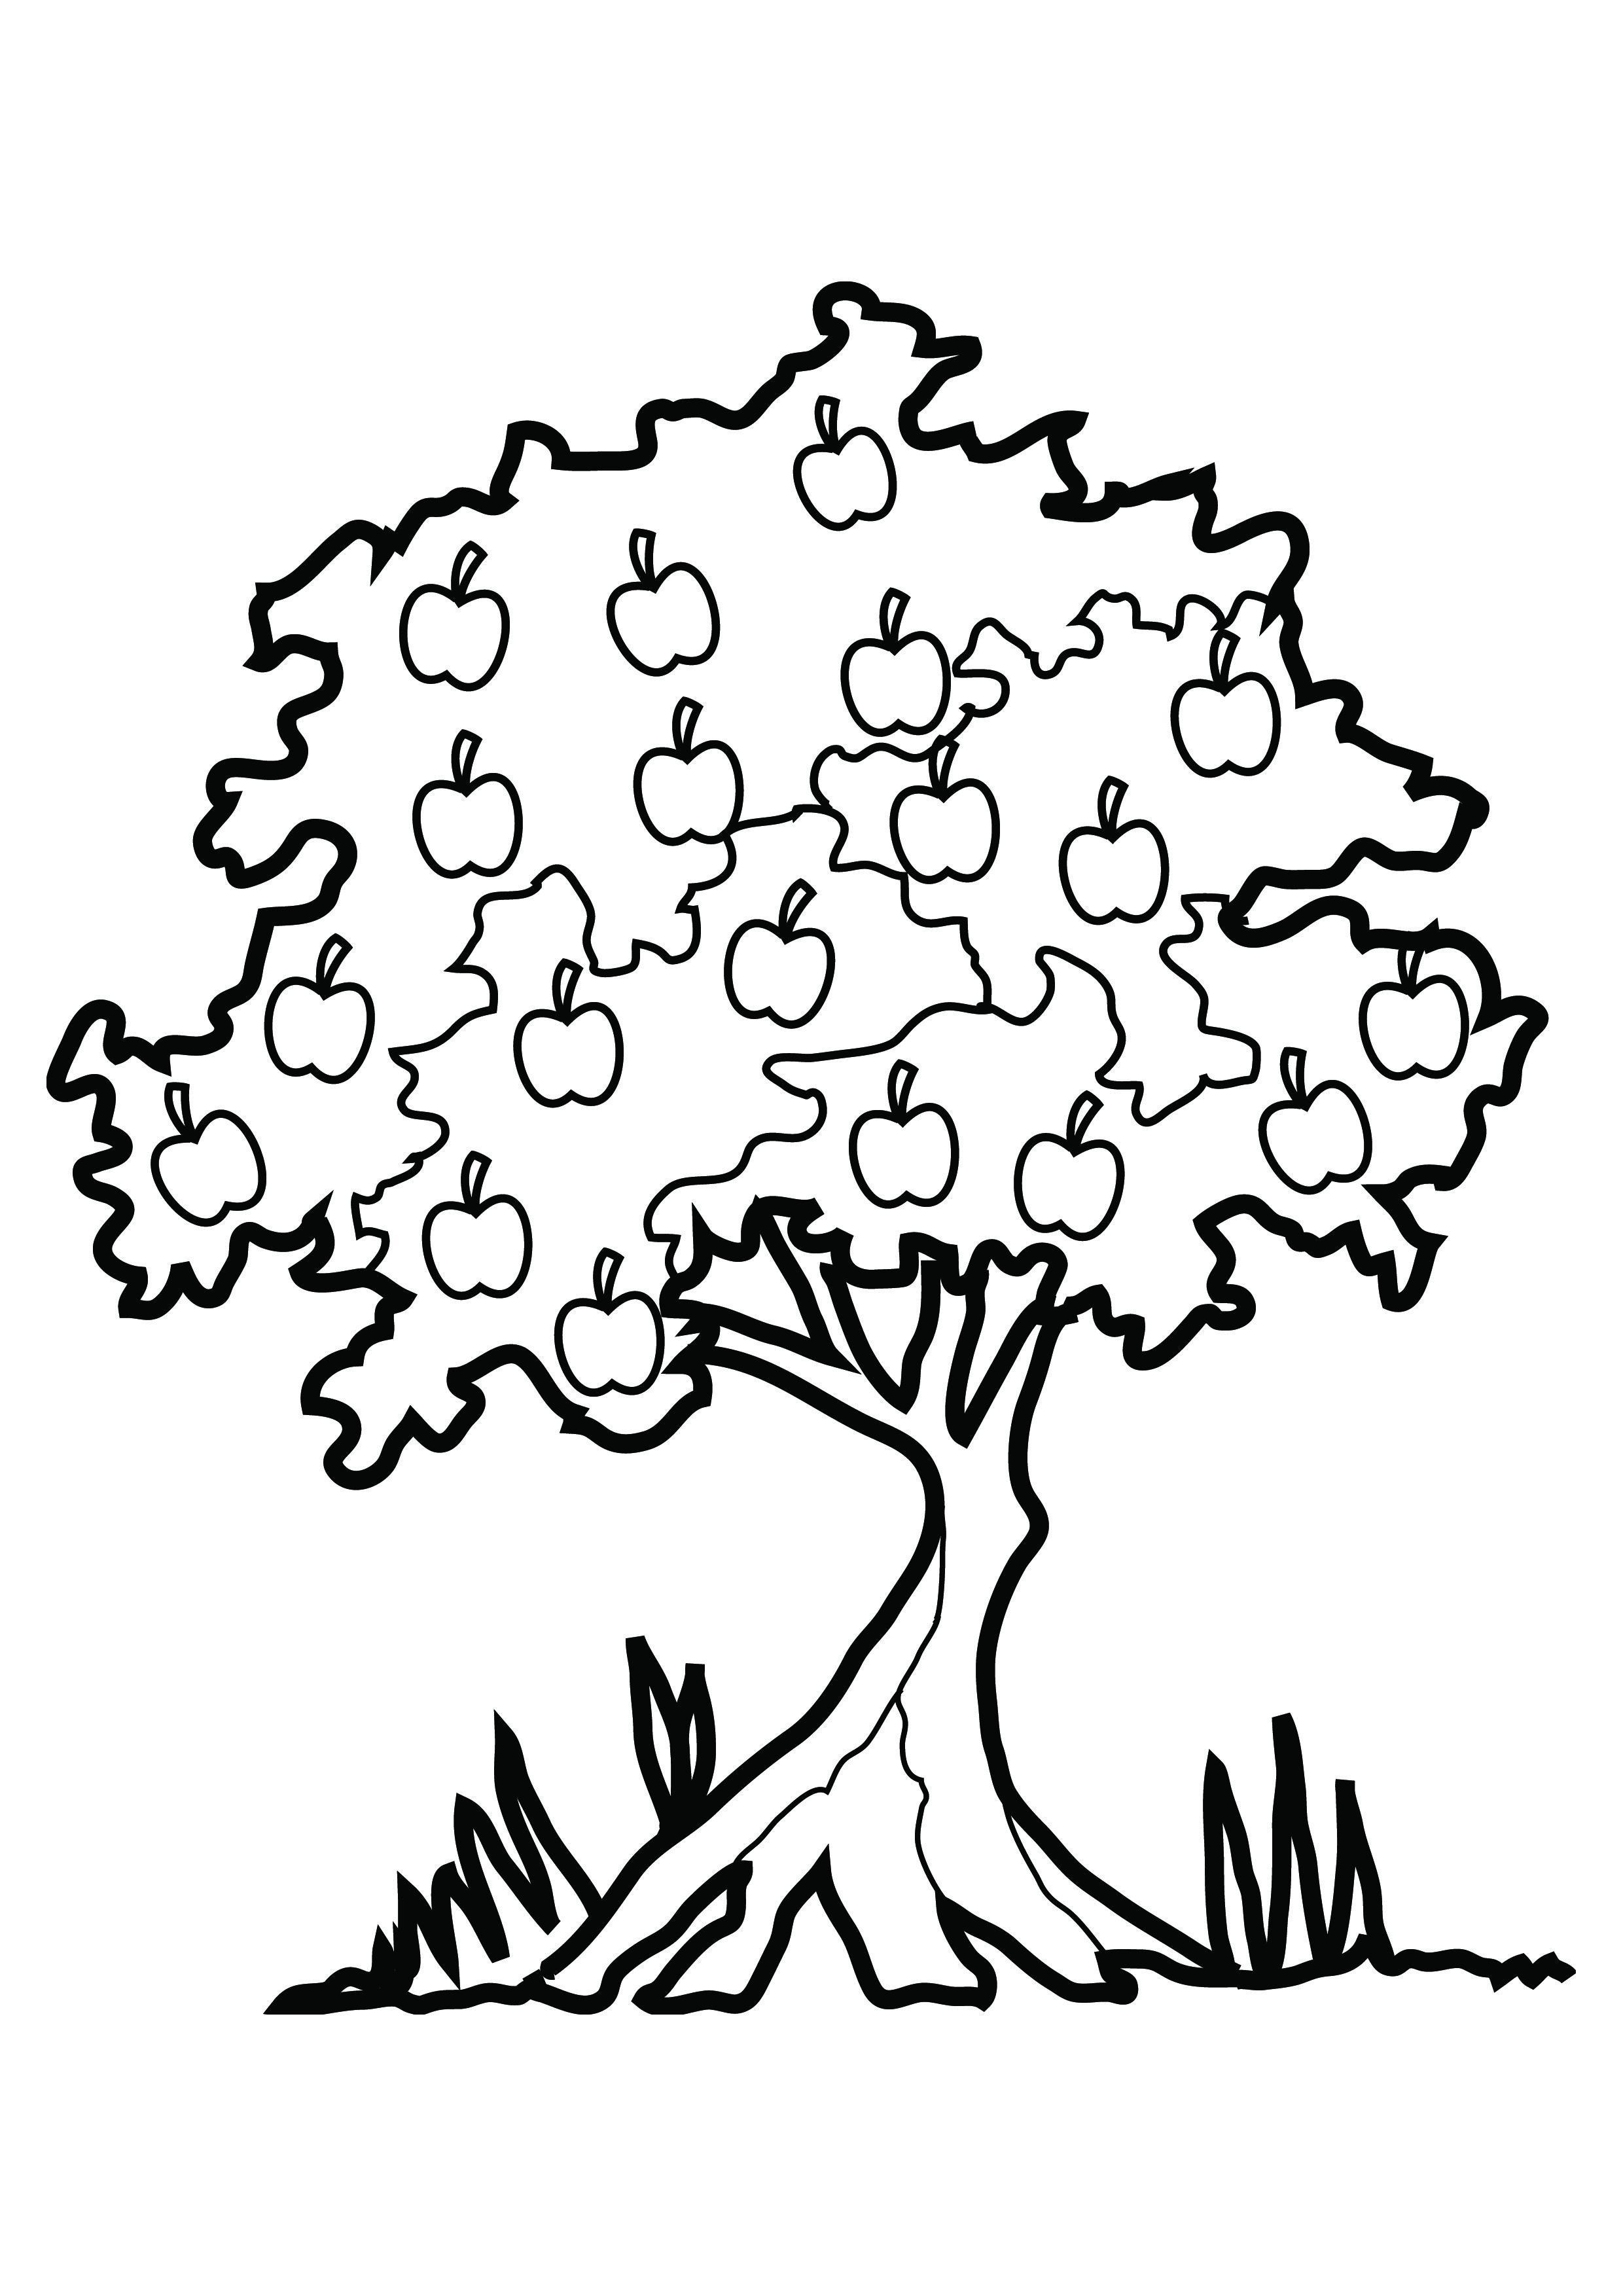 2480x3508 Tree And Roots Coloring Pages Collection Coloring For Kids